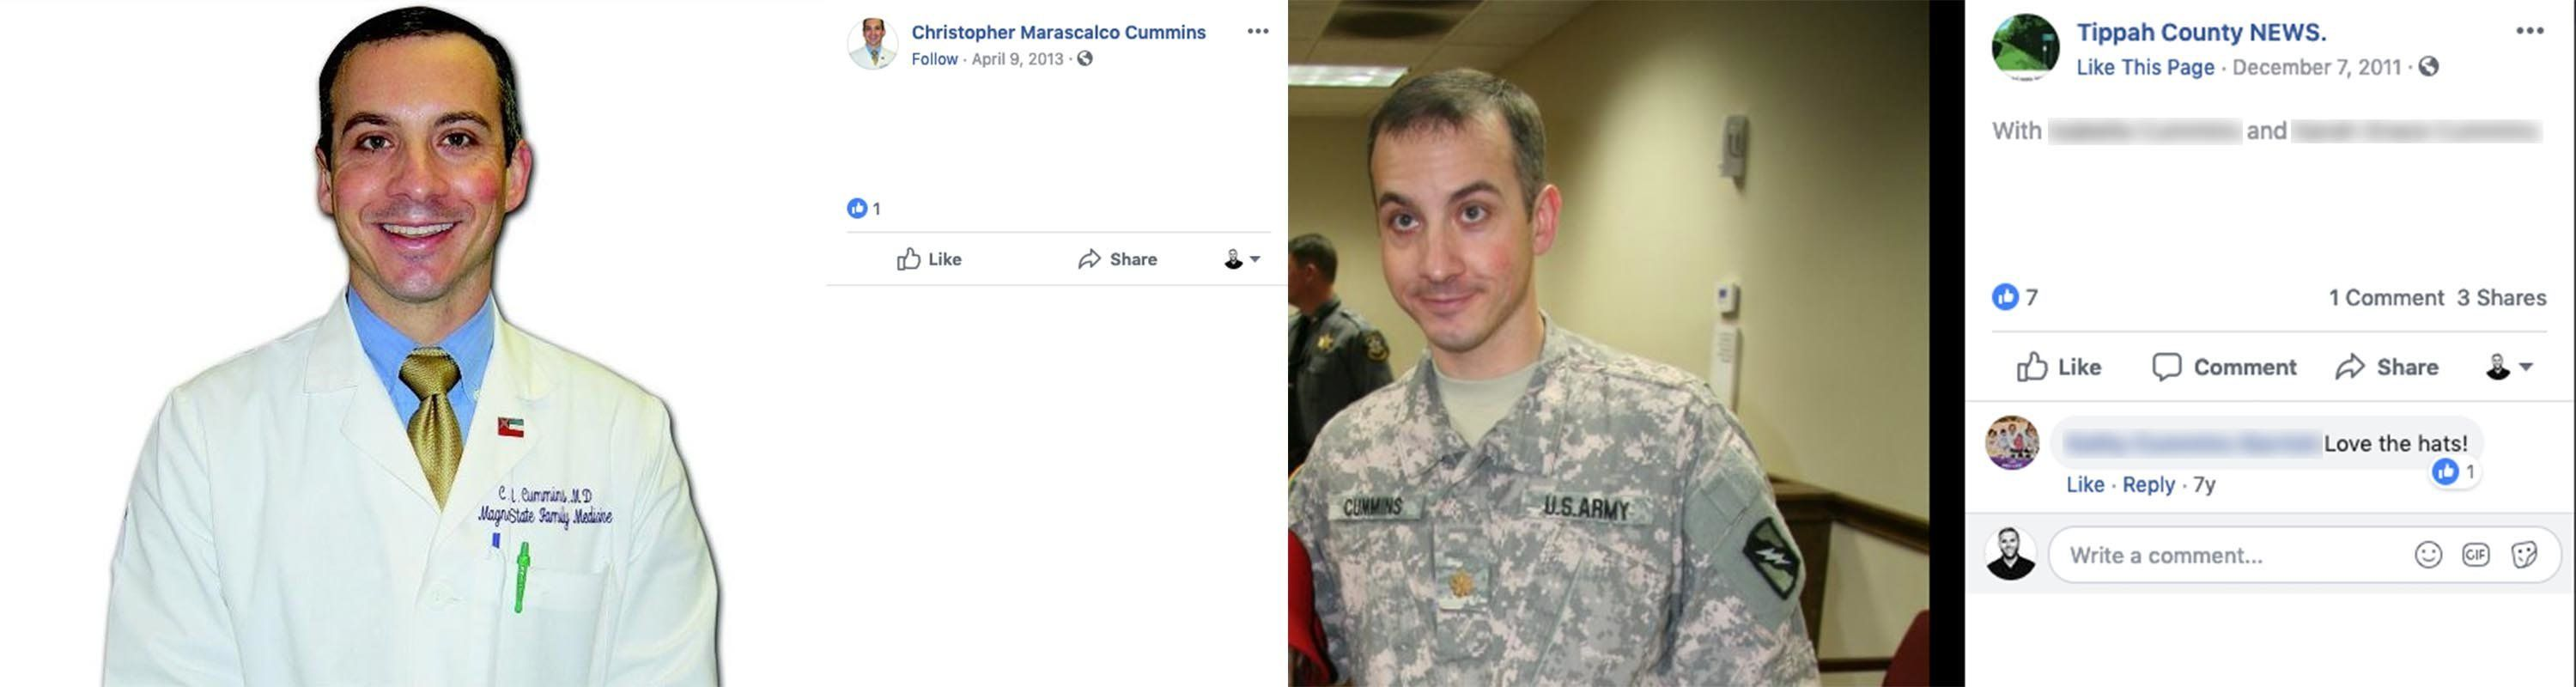 Christopher Cummins, a lieutenant colonel physician in the Army Reserve.Many of his biographical details match those of